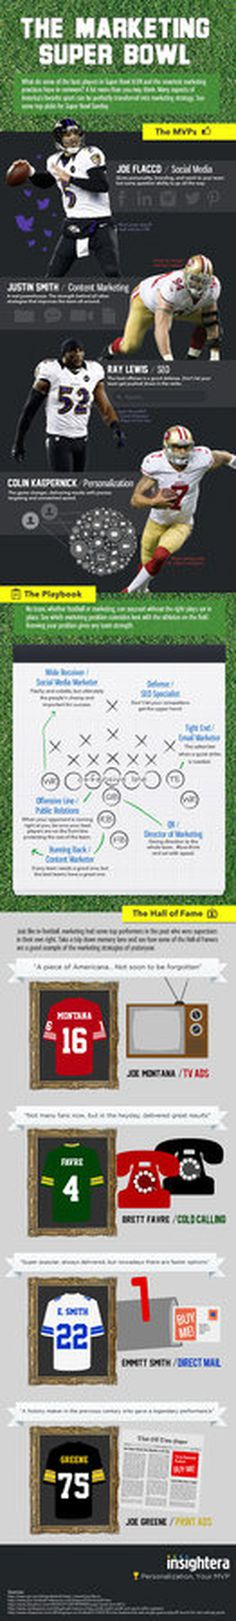 The Marketing Super Bowl #super #infographic #design #graphic #bowl